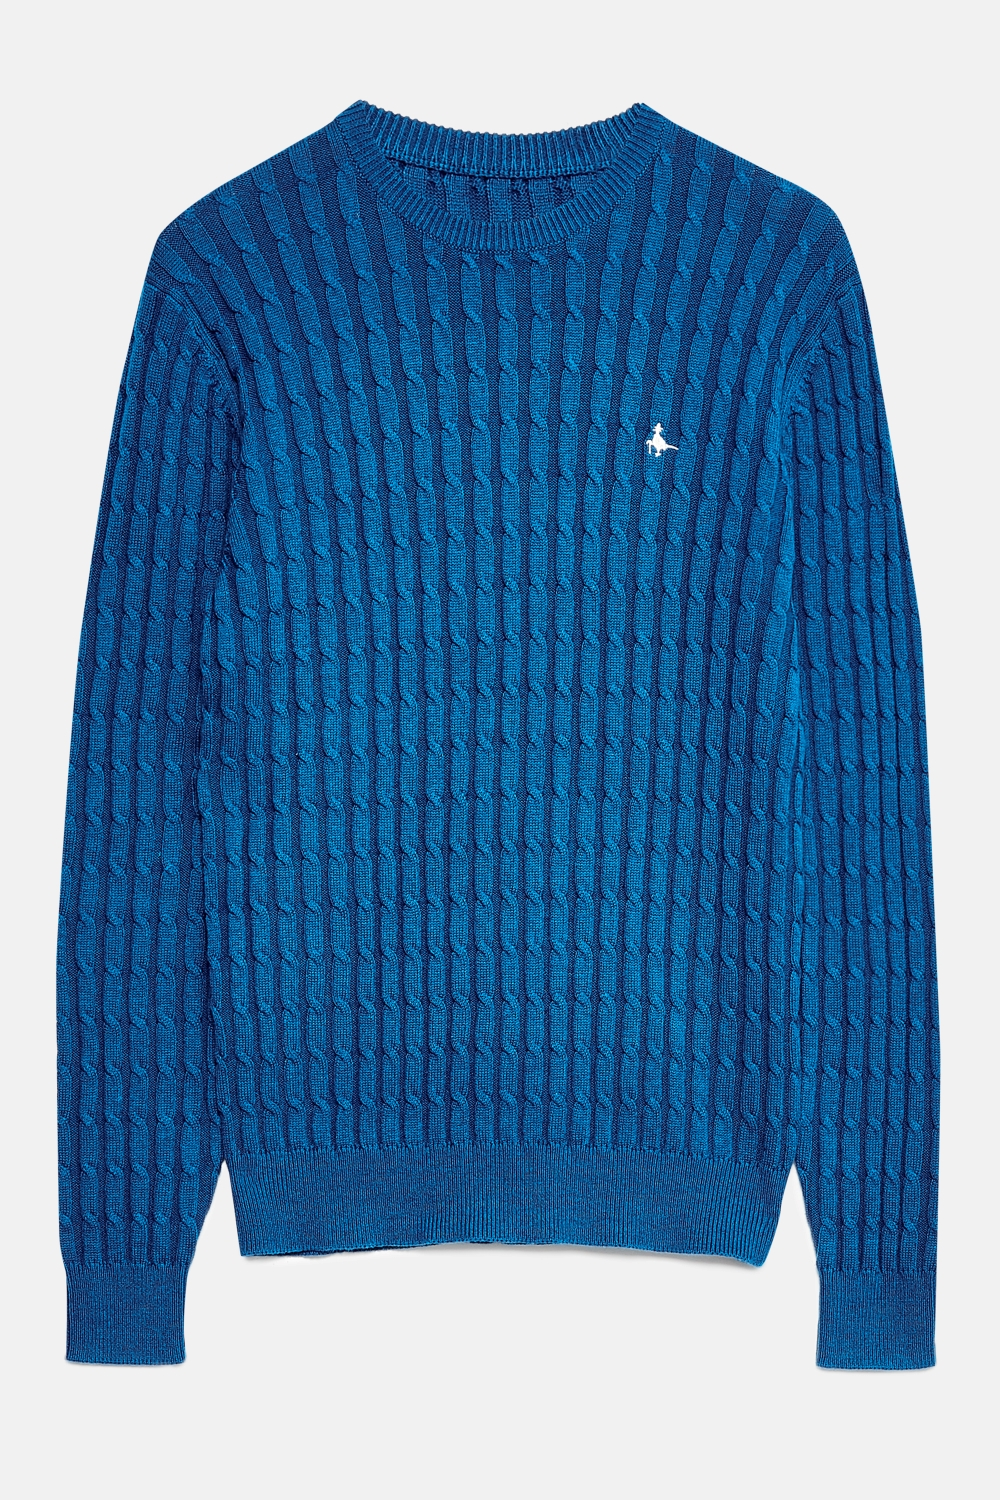 Jack Wills Blue MARLOW CABLE CREW NECK JUMPER